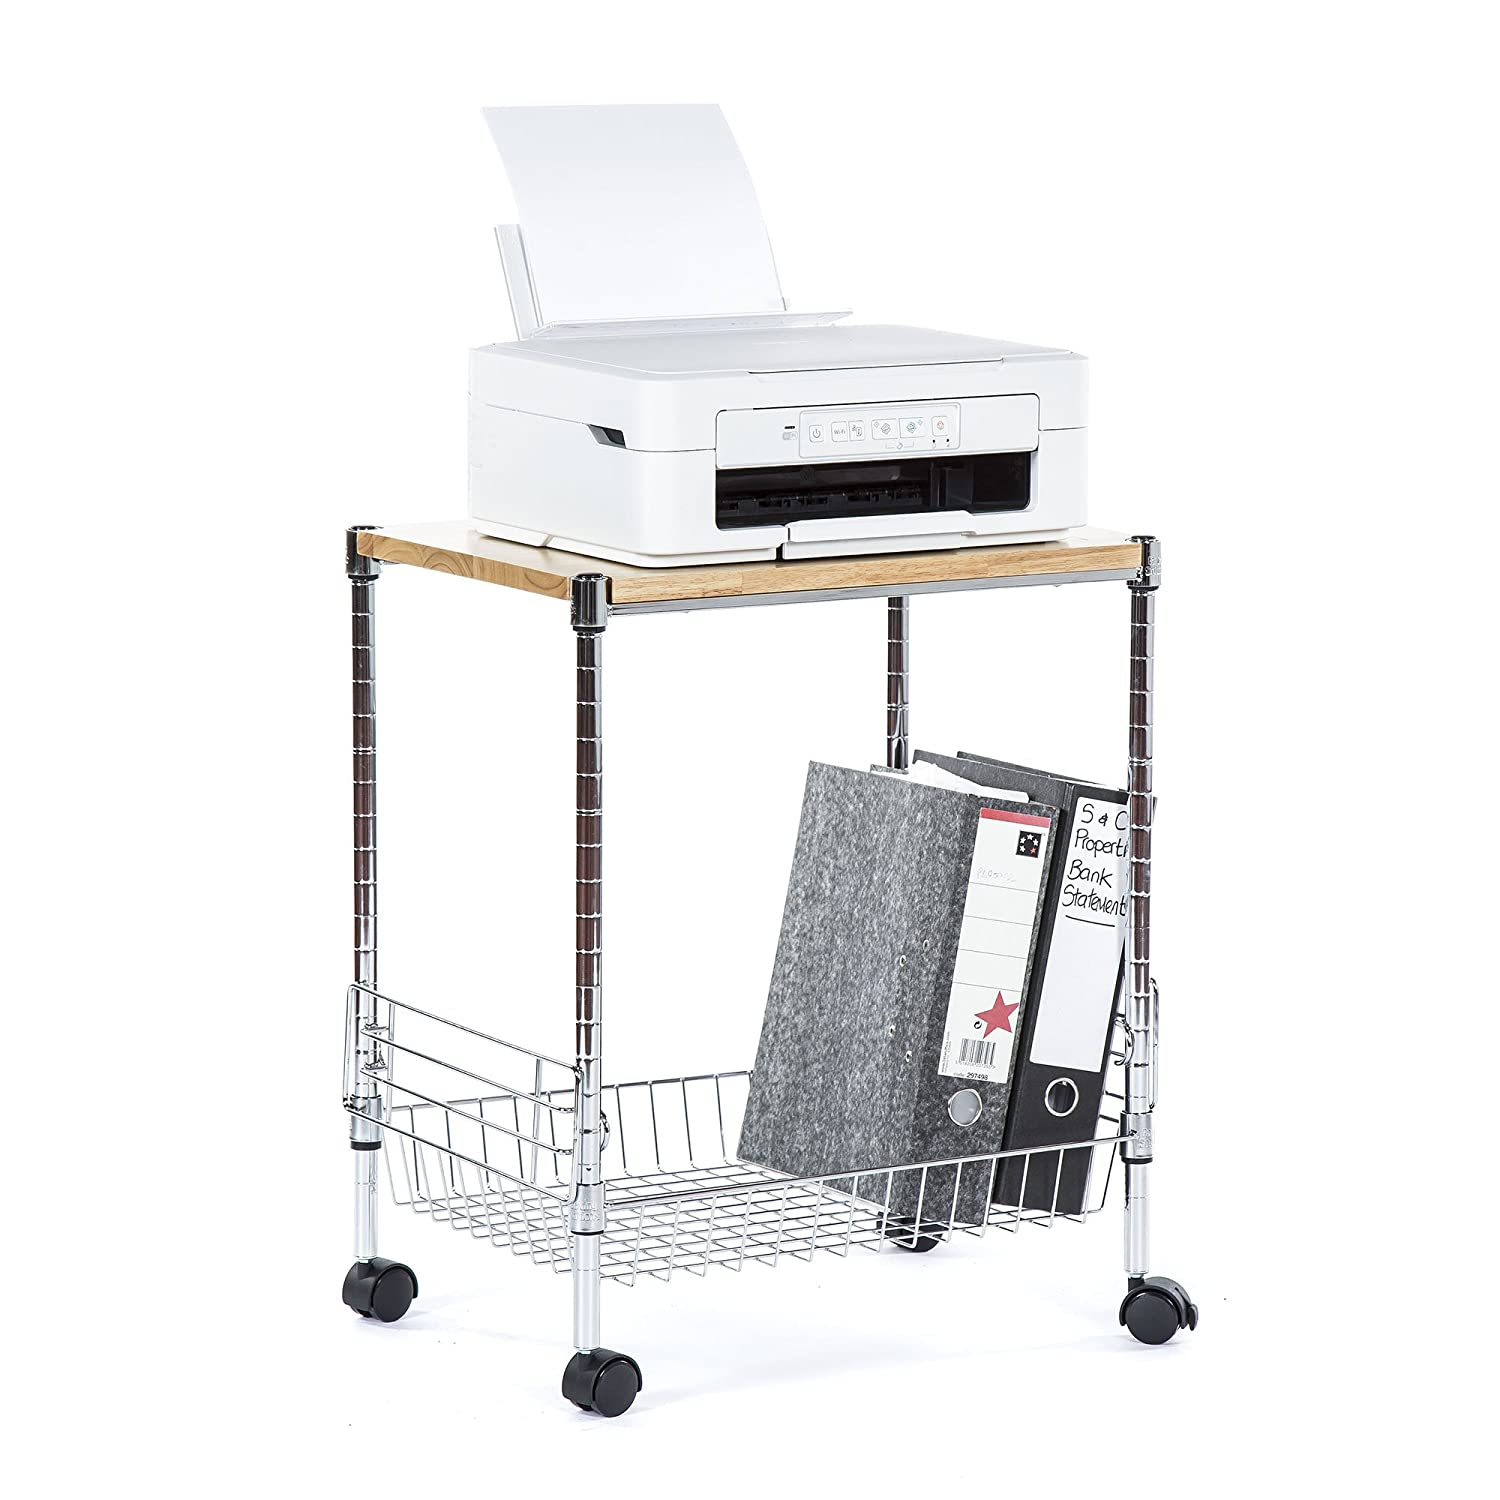 Universal Chrome Trolley - Home Office, Workplace Storage System 610mm H x 500mm W x 360mm D - Free Next Day Delivery* Racking Solutions